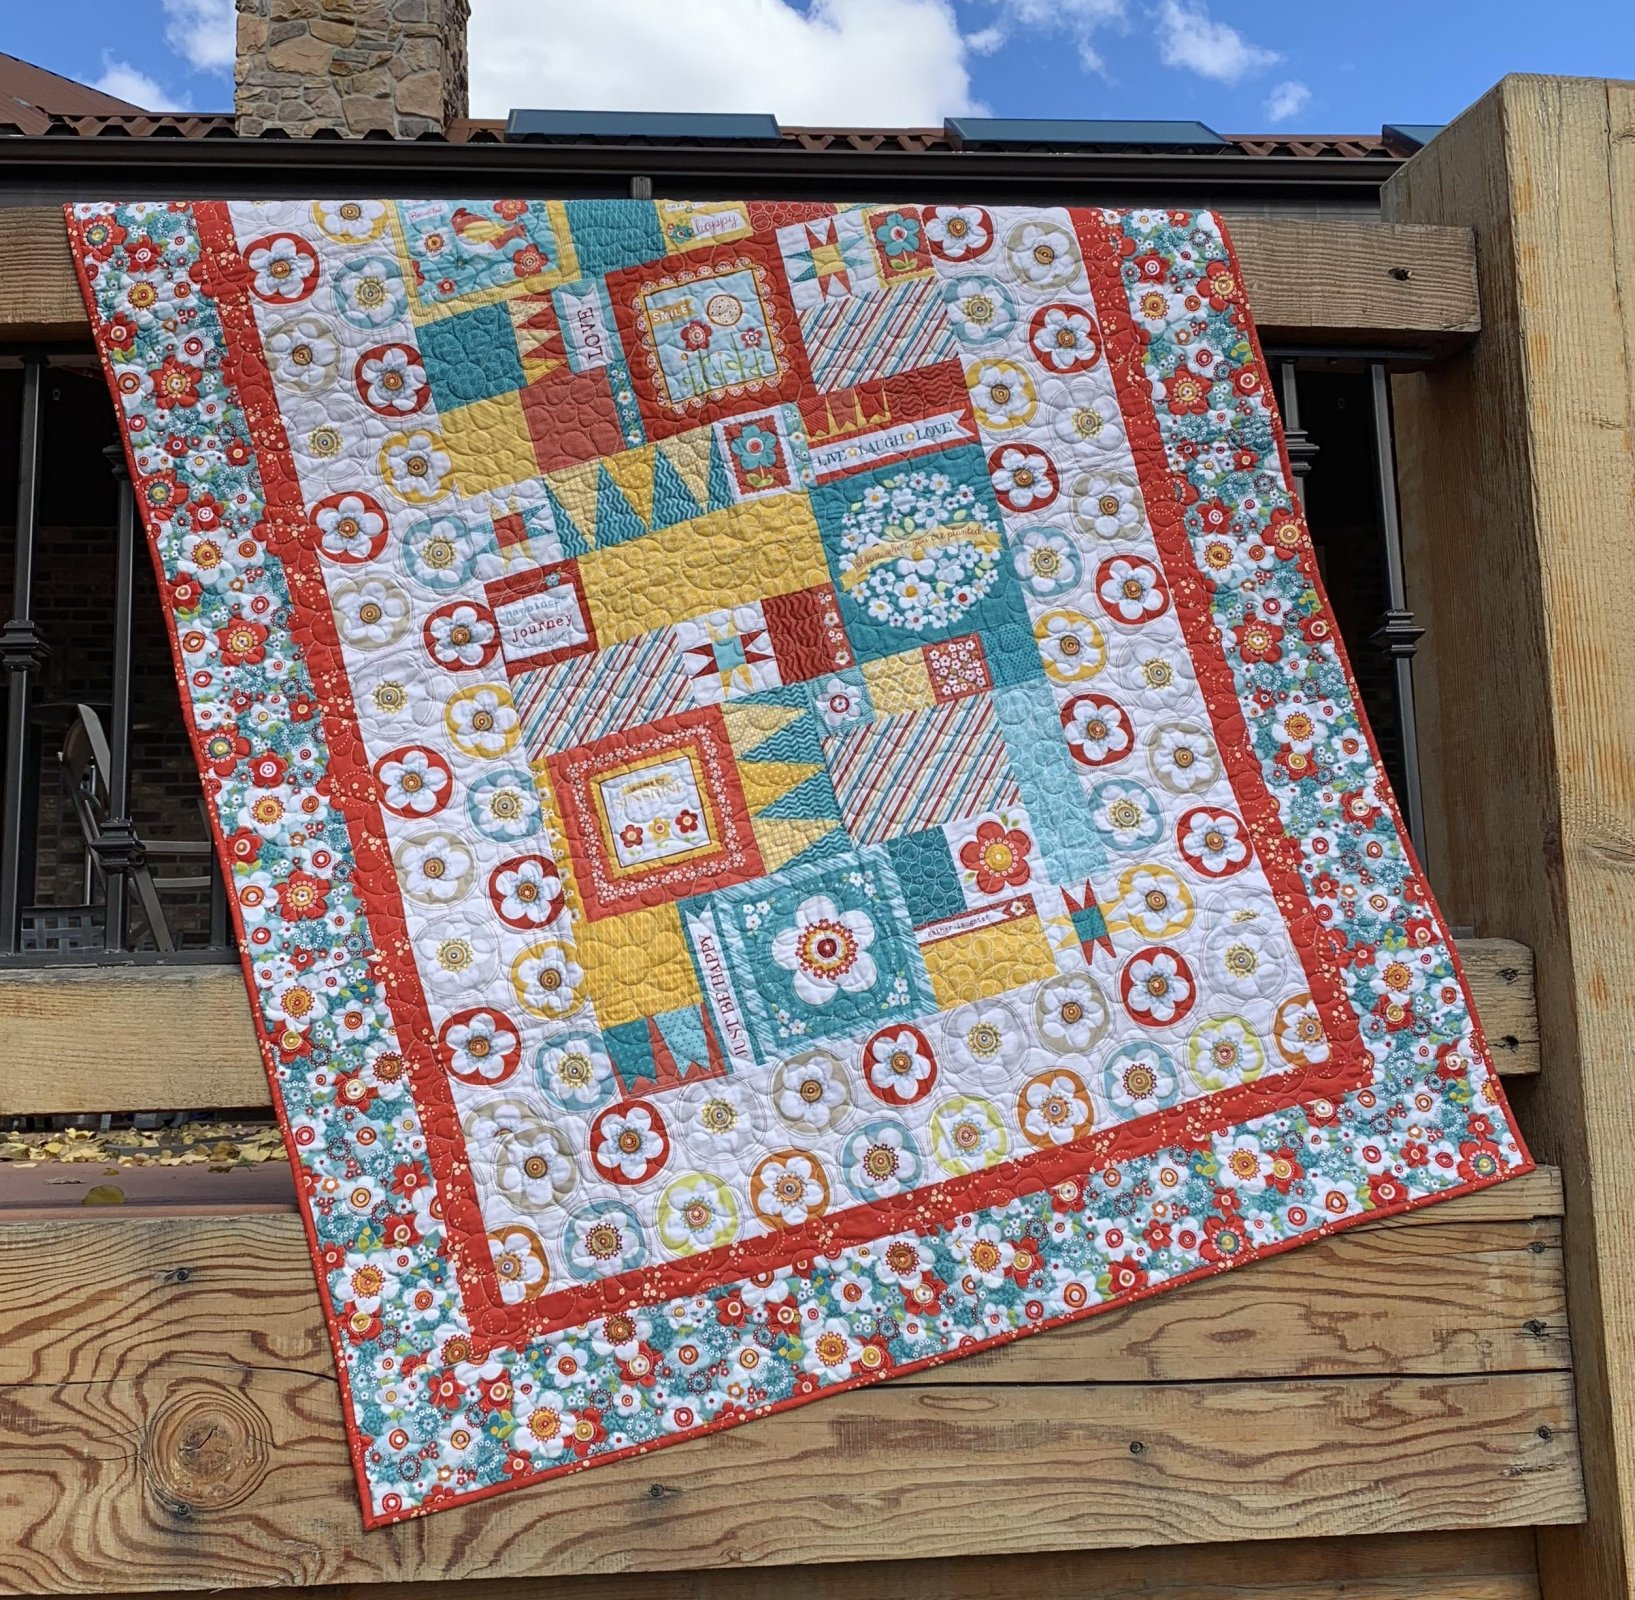 Live Laugh Love Quilt - 49 x 67